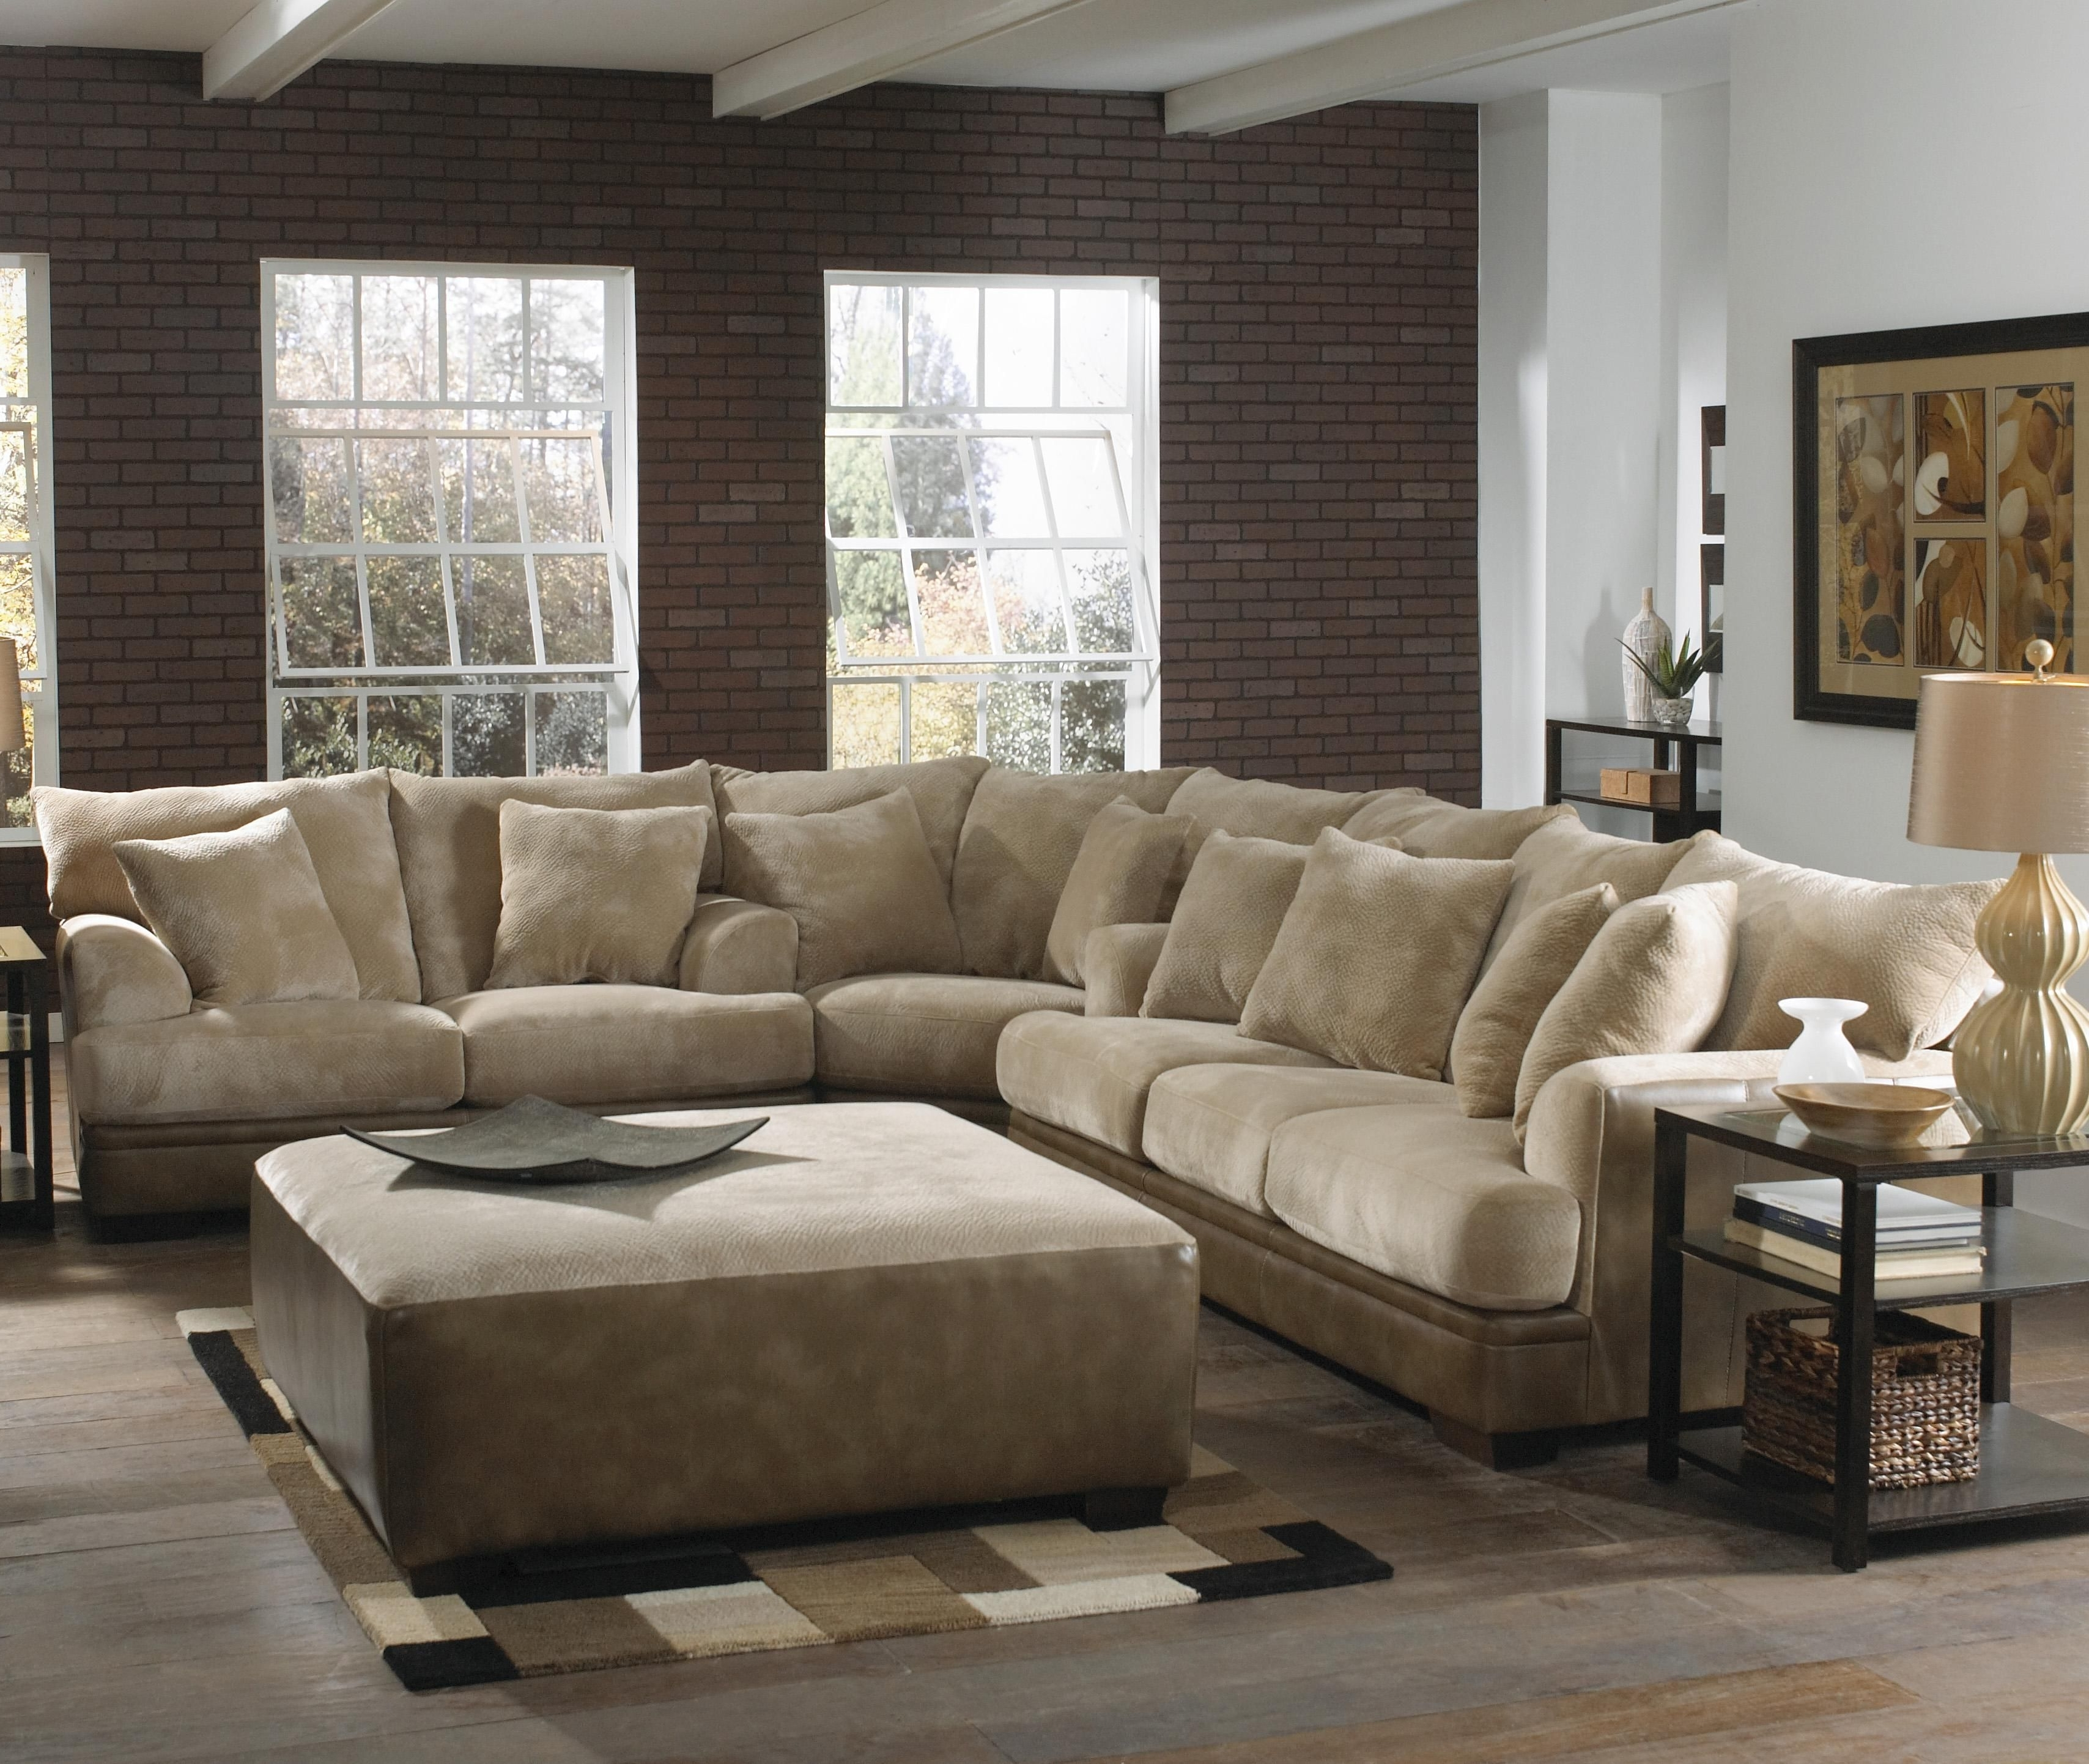 2019 Barkley Large L Shaped Sectional Sofa With Right Side Loveseat Intended For Jackson Tn Sectional Sofas (View 2 of 20)